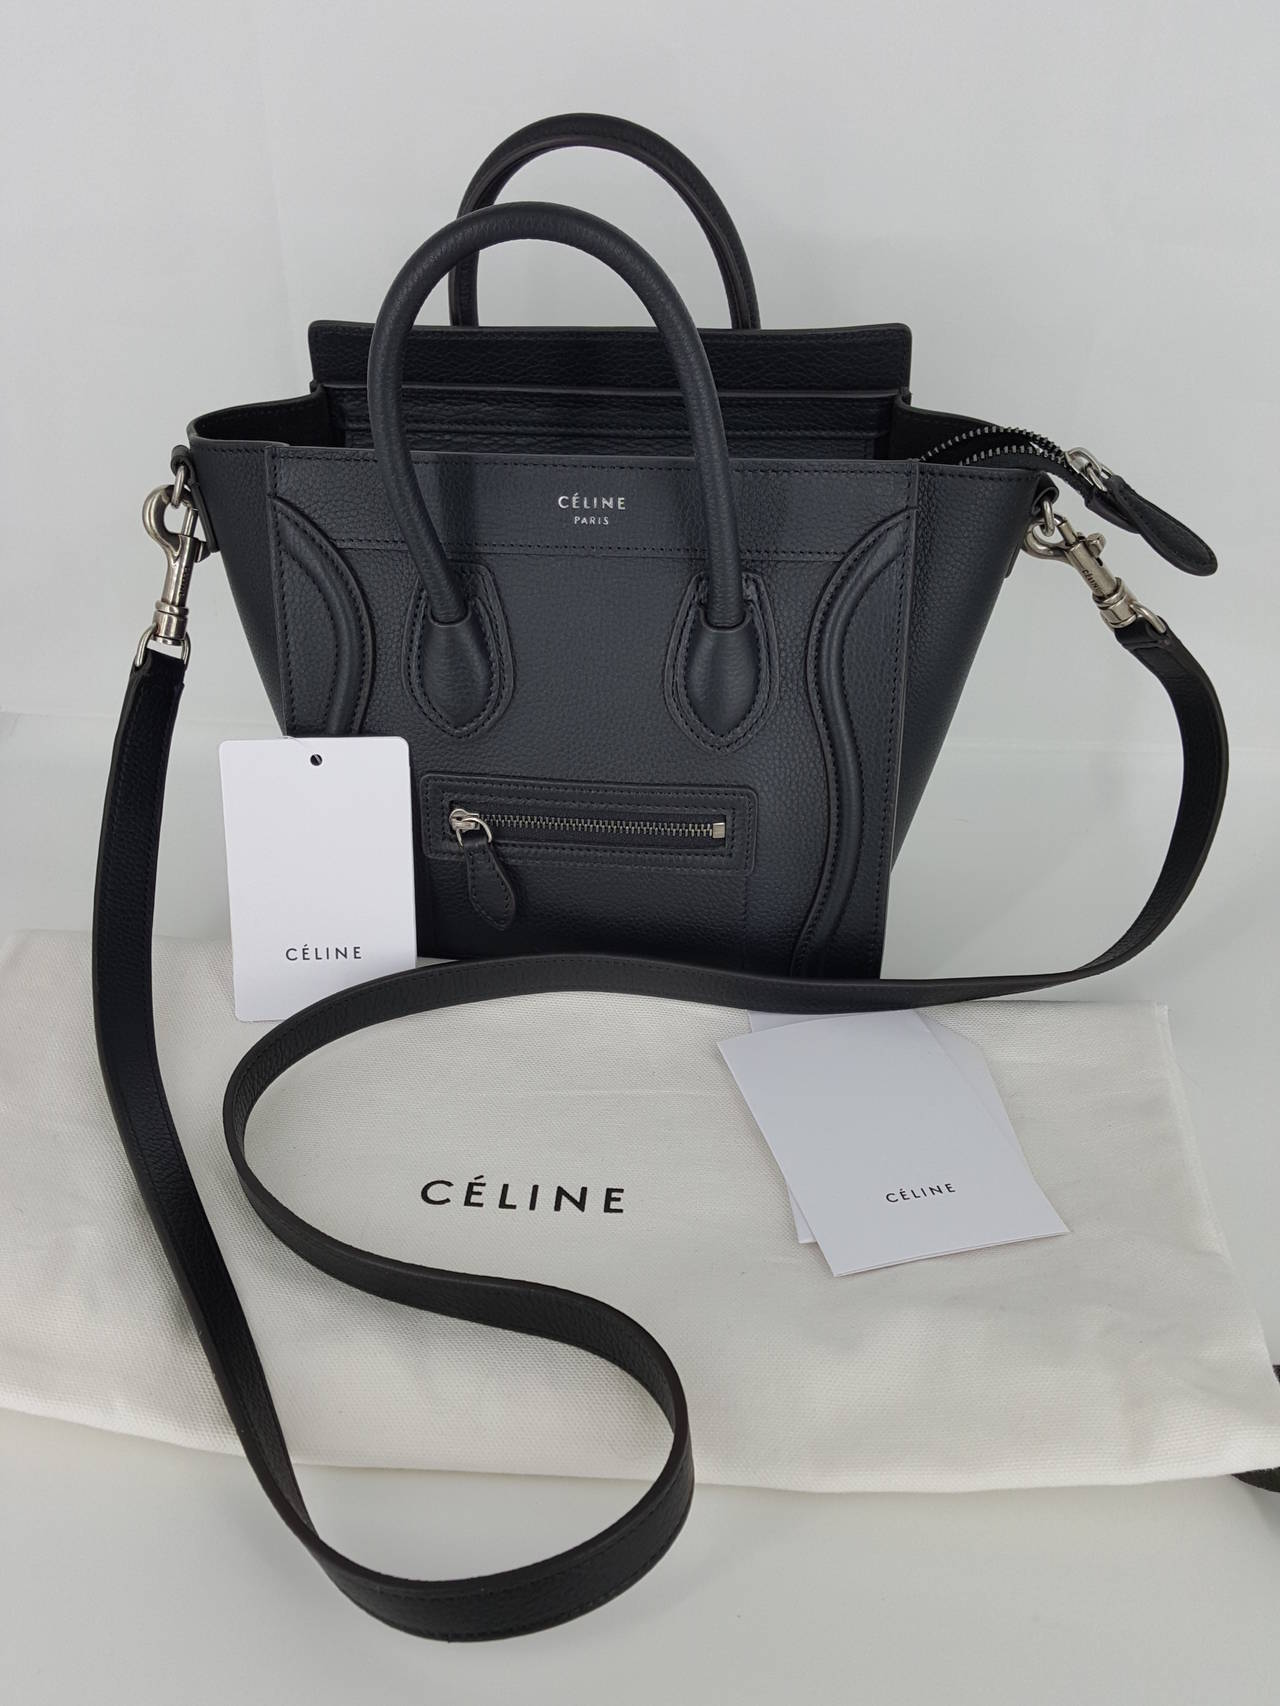 New Celine Nano Bag In Hard To Get Black Pebble Leather at 1stdibs